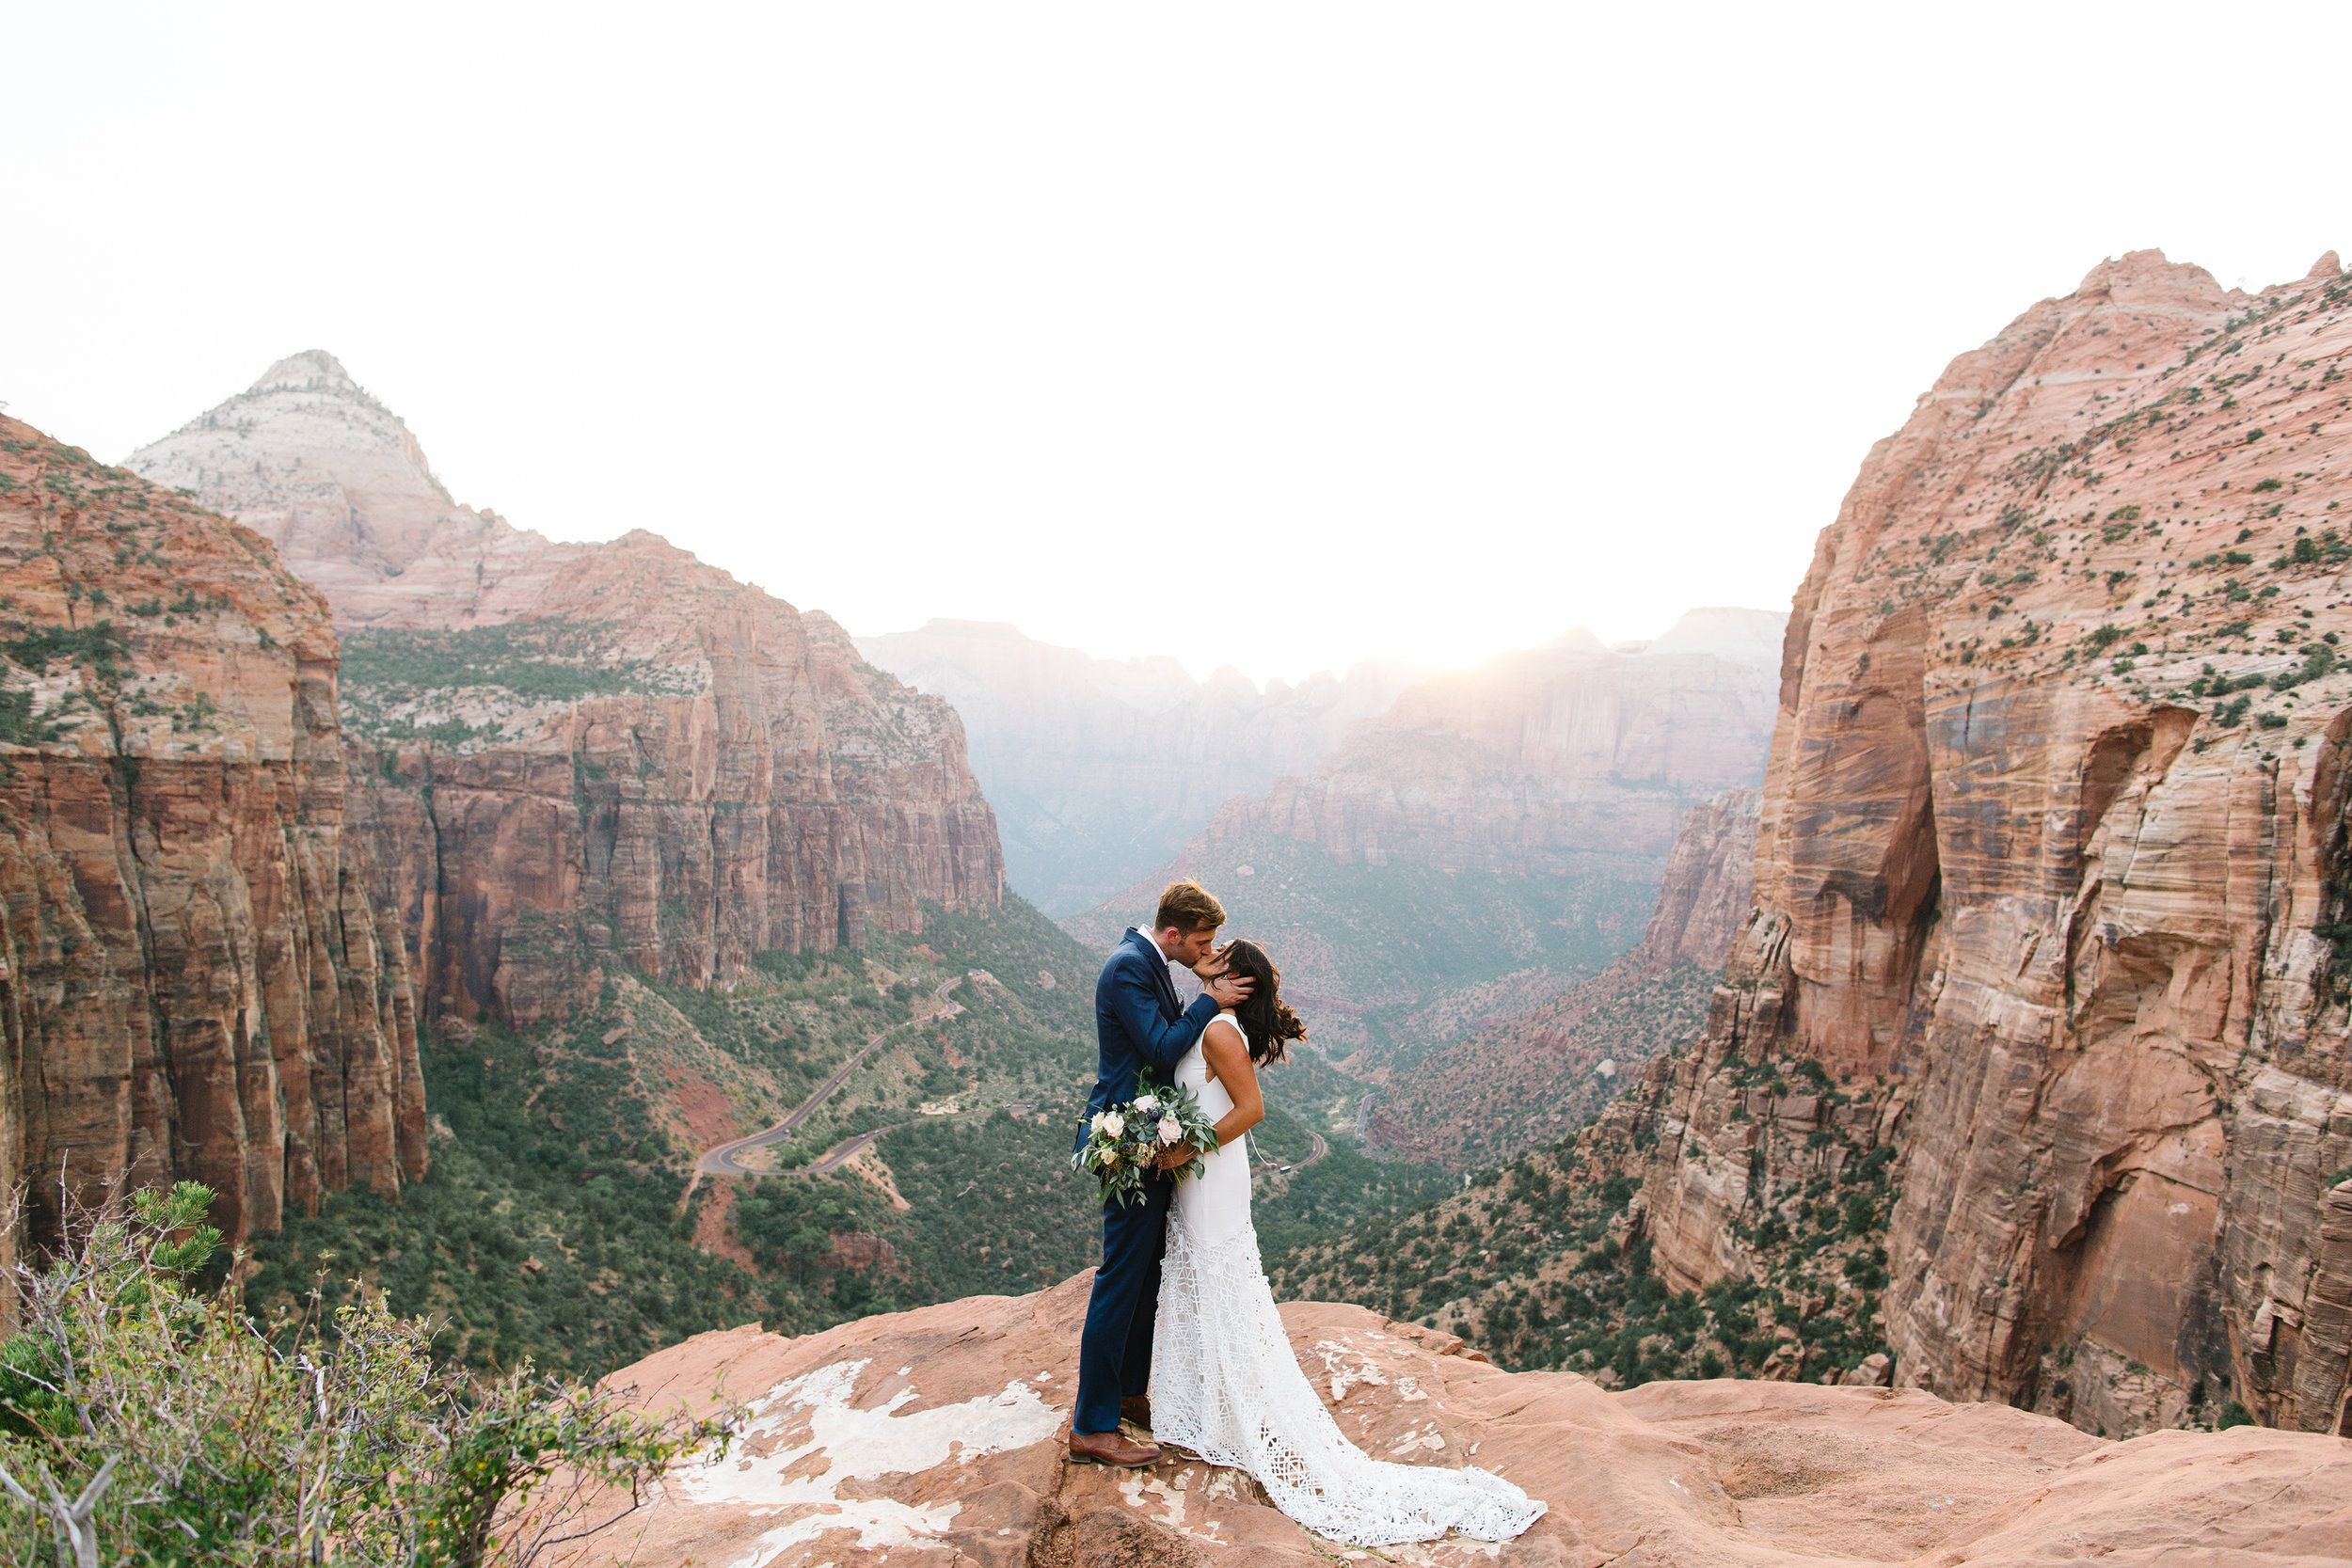 Zion National Park Wedding Photographer In 2020 National Park Wedding Park Weddings Utah Wedding Photographers